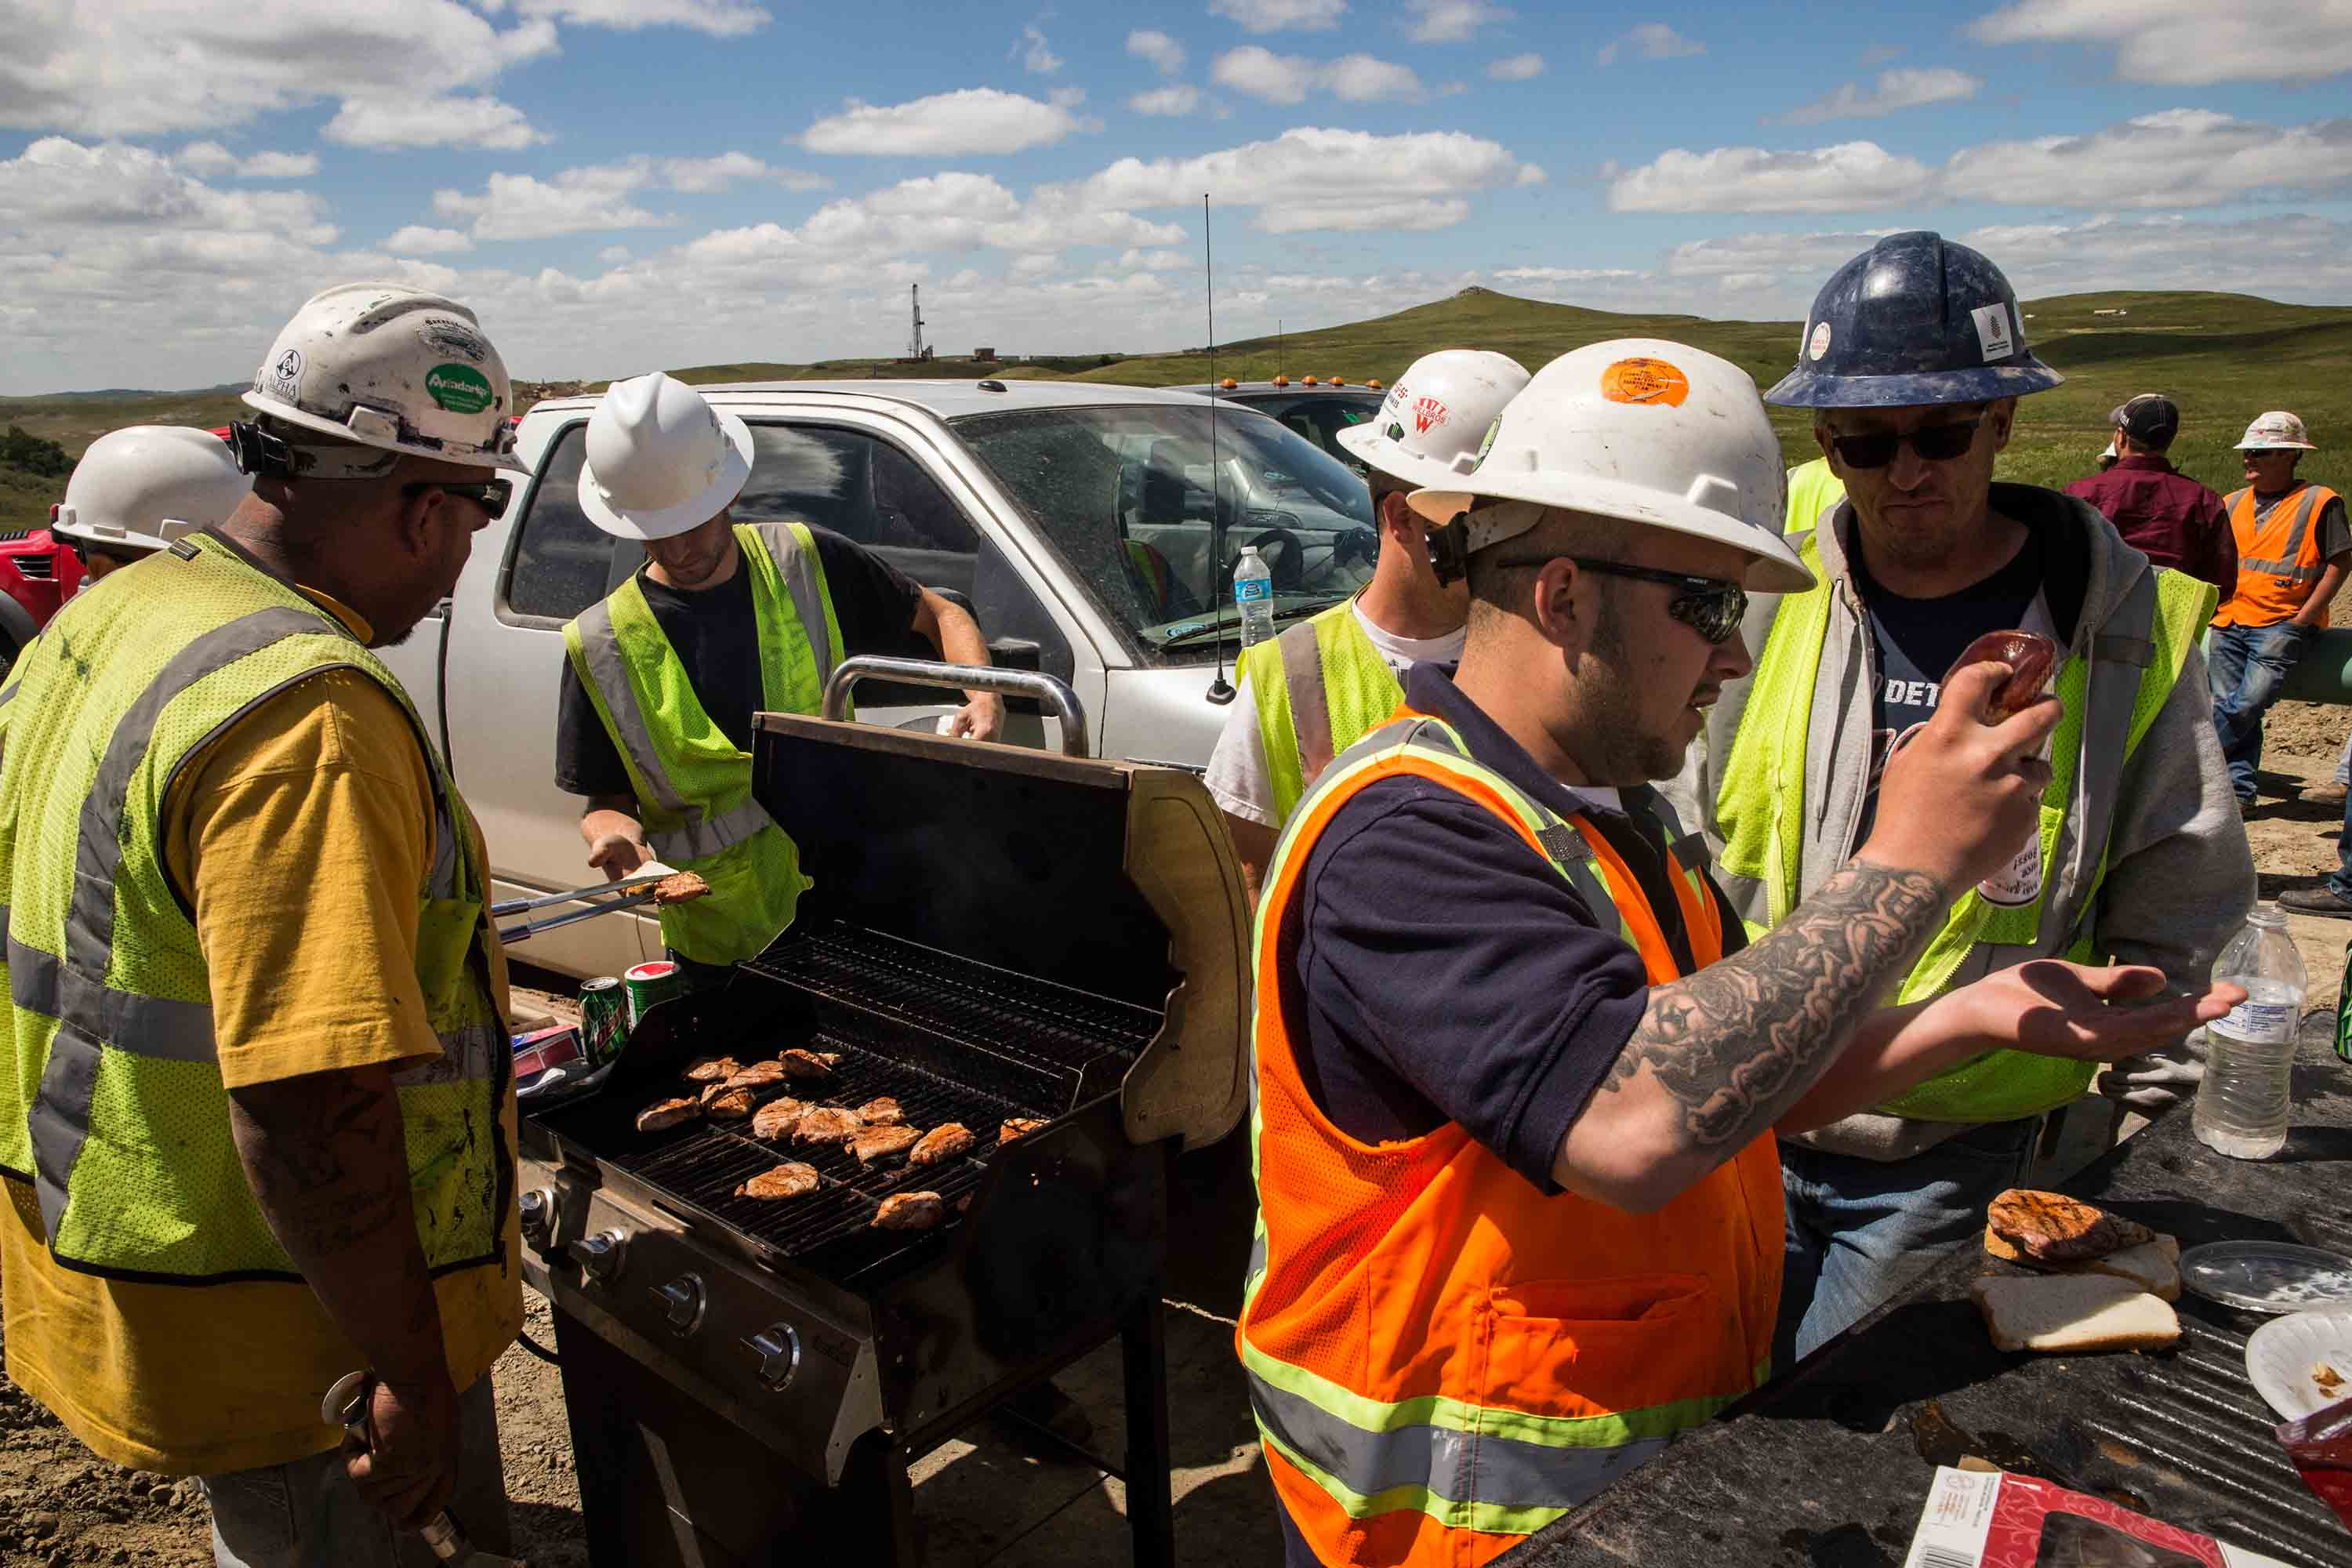 Construction workers specializing in pipe-laying grill lunch while working on a pipeline that will stream line oil production from drill sites to train yards and oil refineries on July 25, 2013 outside Watford City.